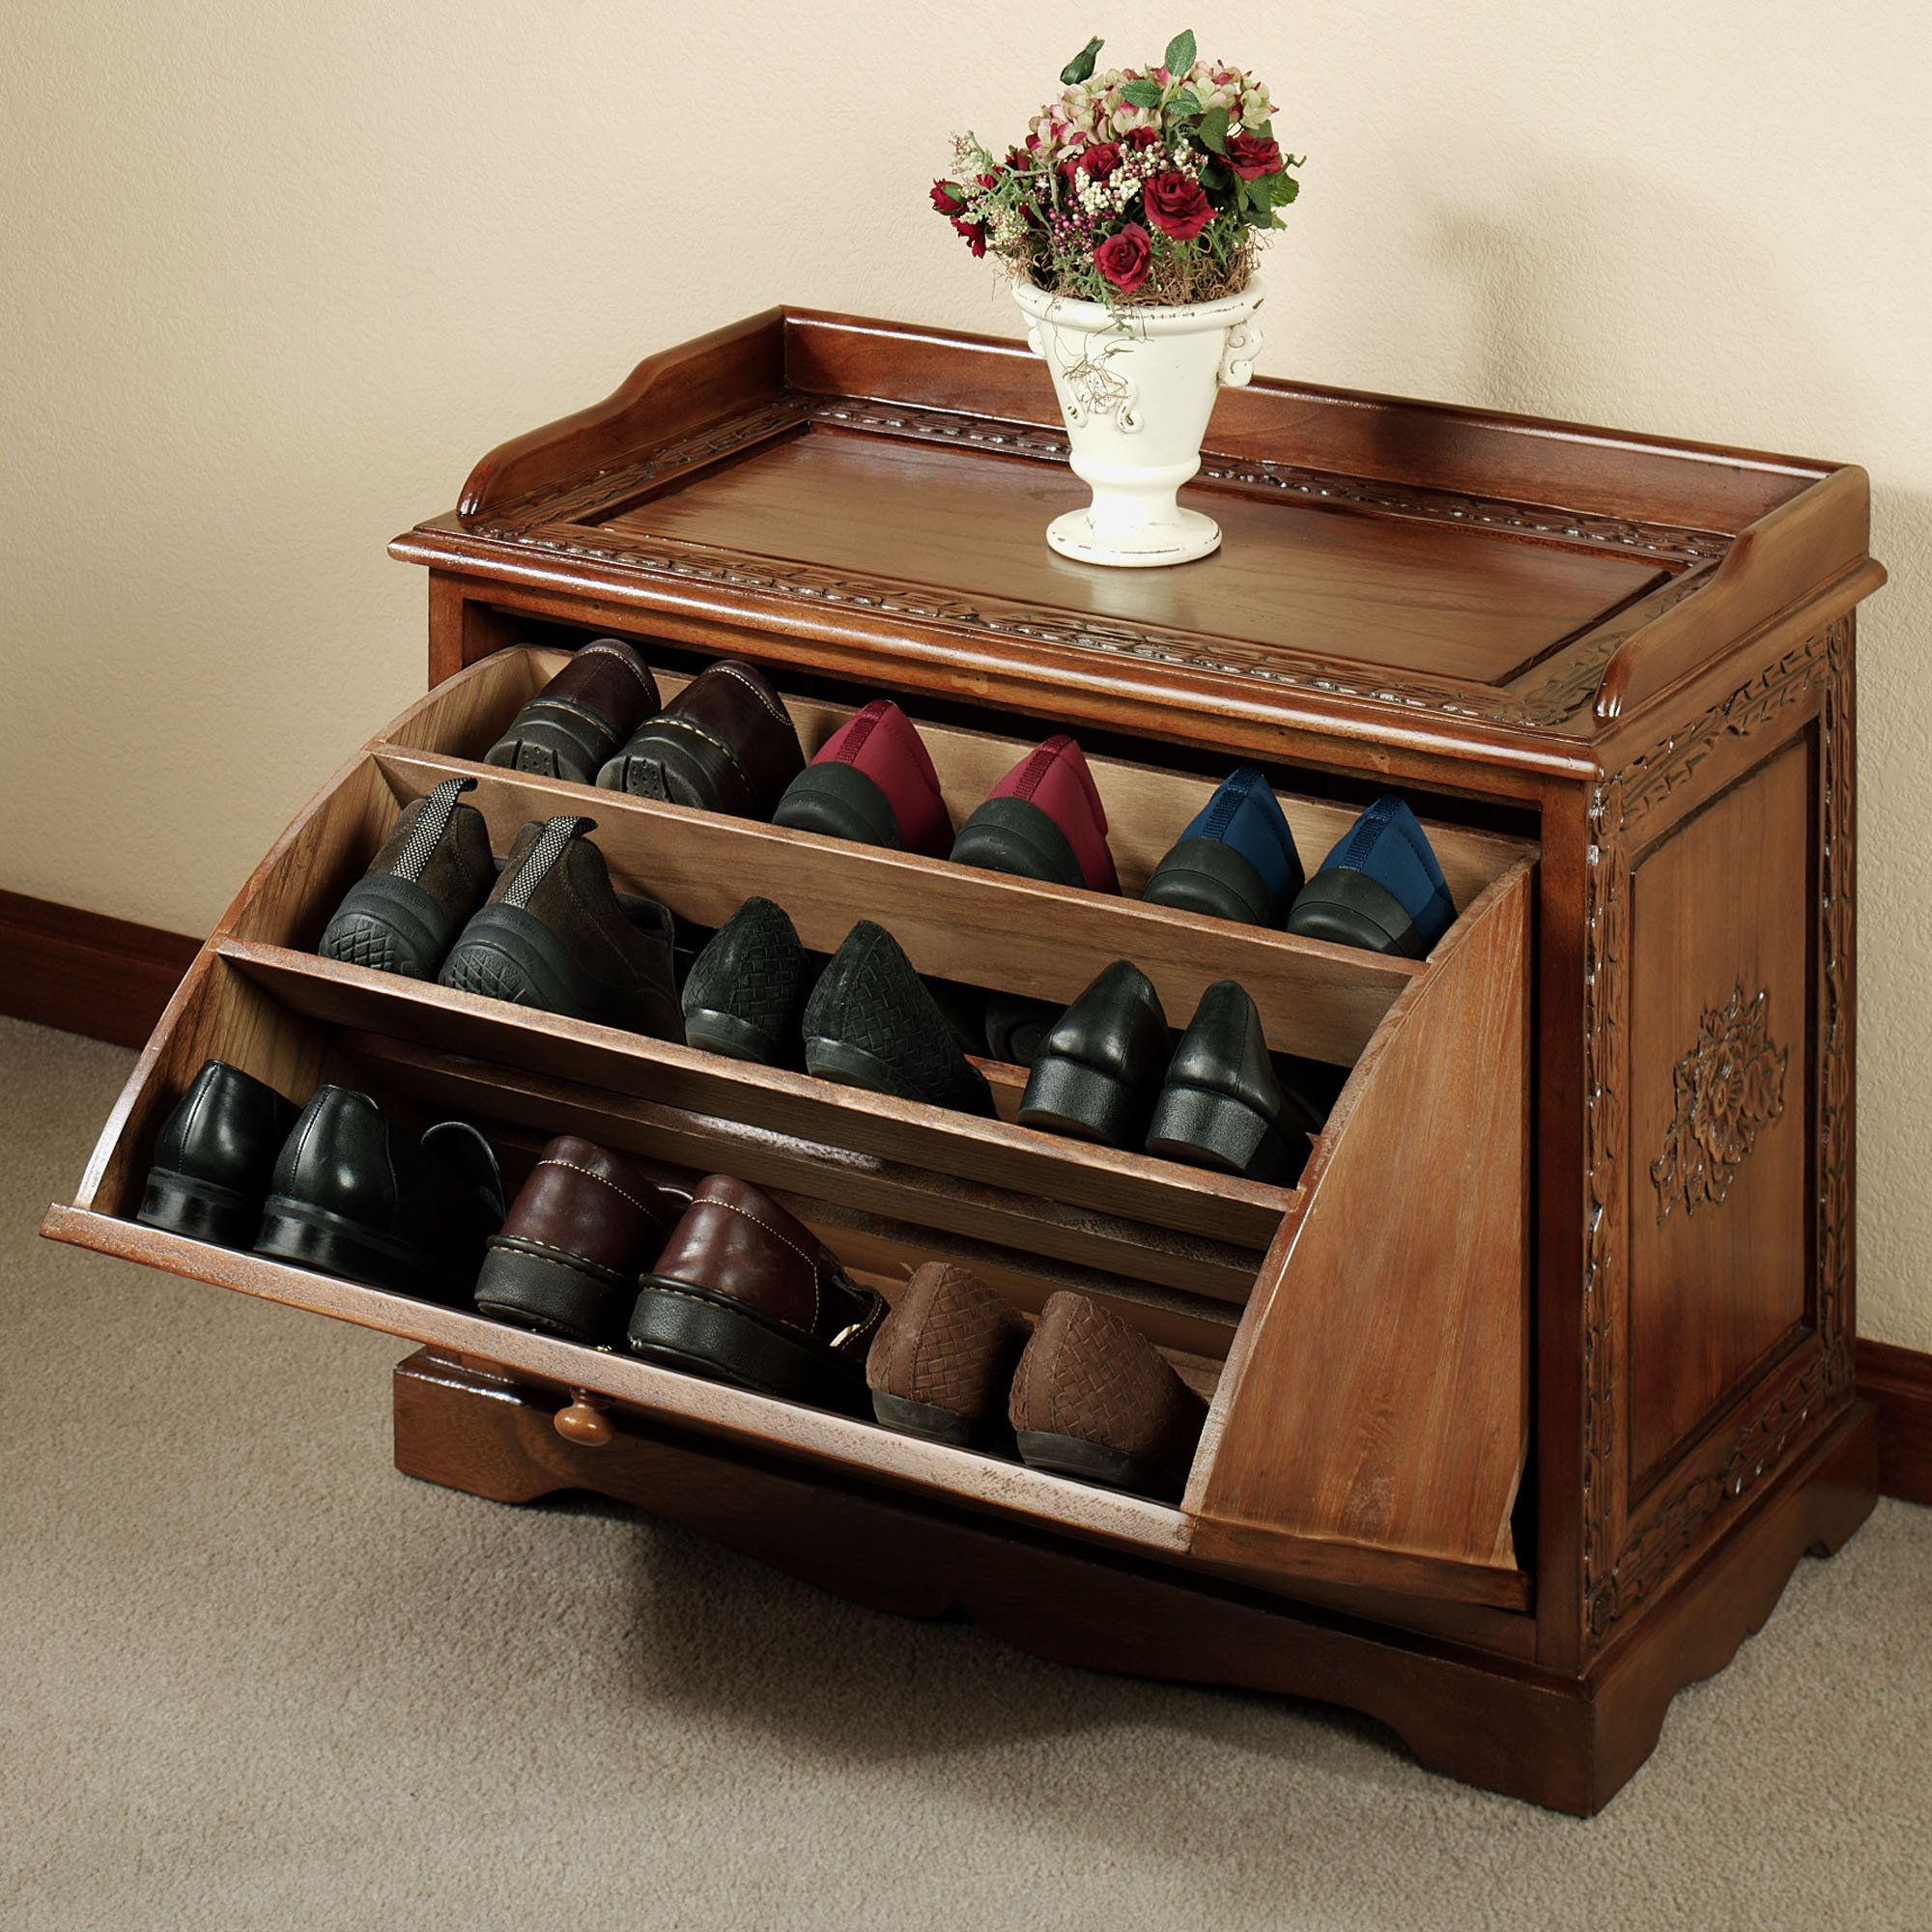 Bon Smart Bench Shoe Organizer To Keep More Shoes And Hide Them Inside